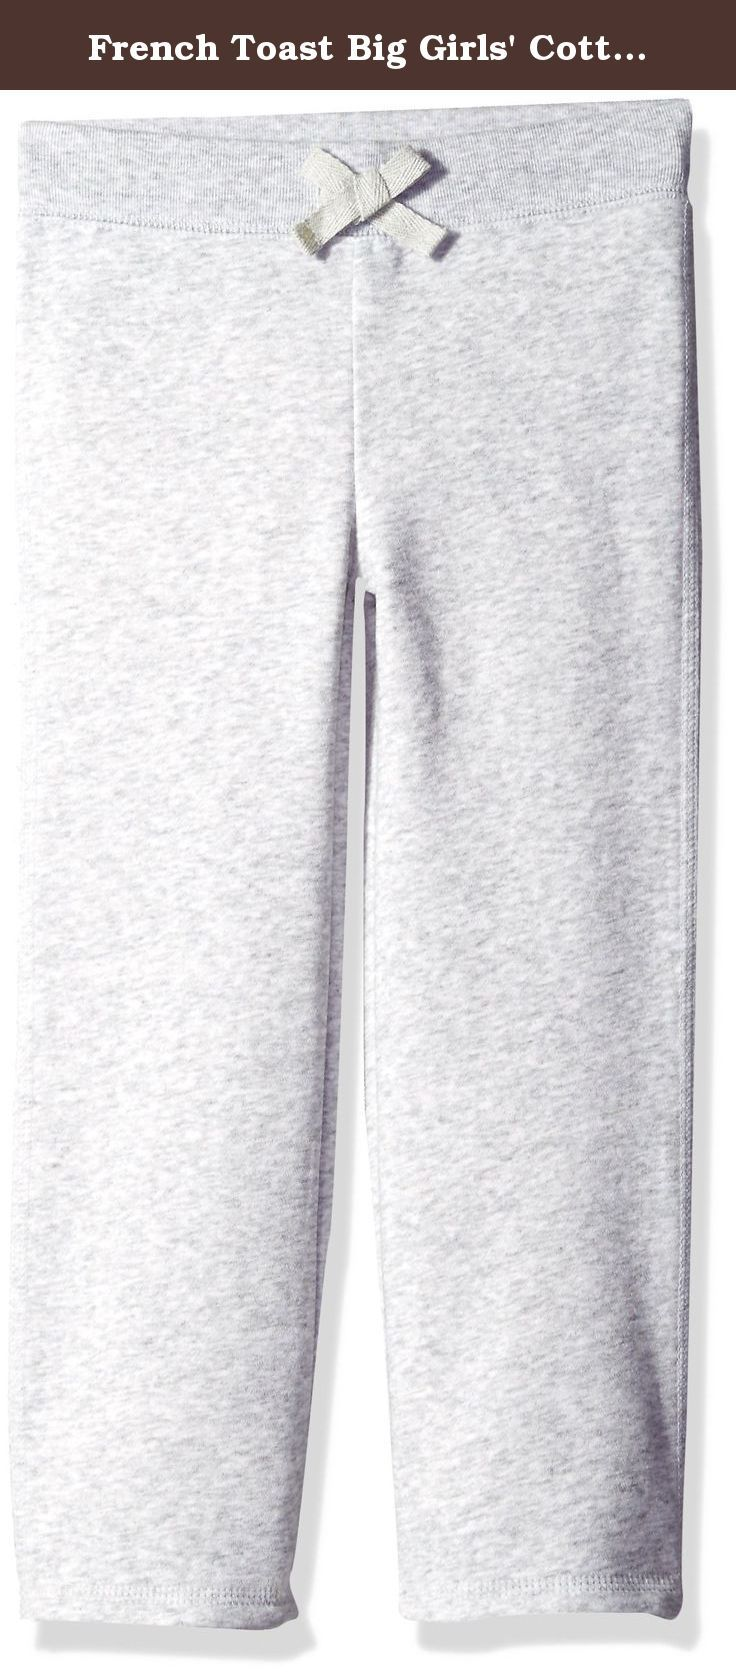 melhores ideias sobre should students wear uniforms no french toast big girls cotton blend fleece pant heather grey 14 16